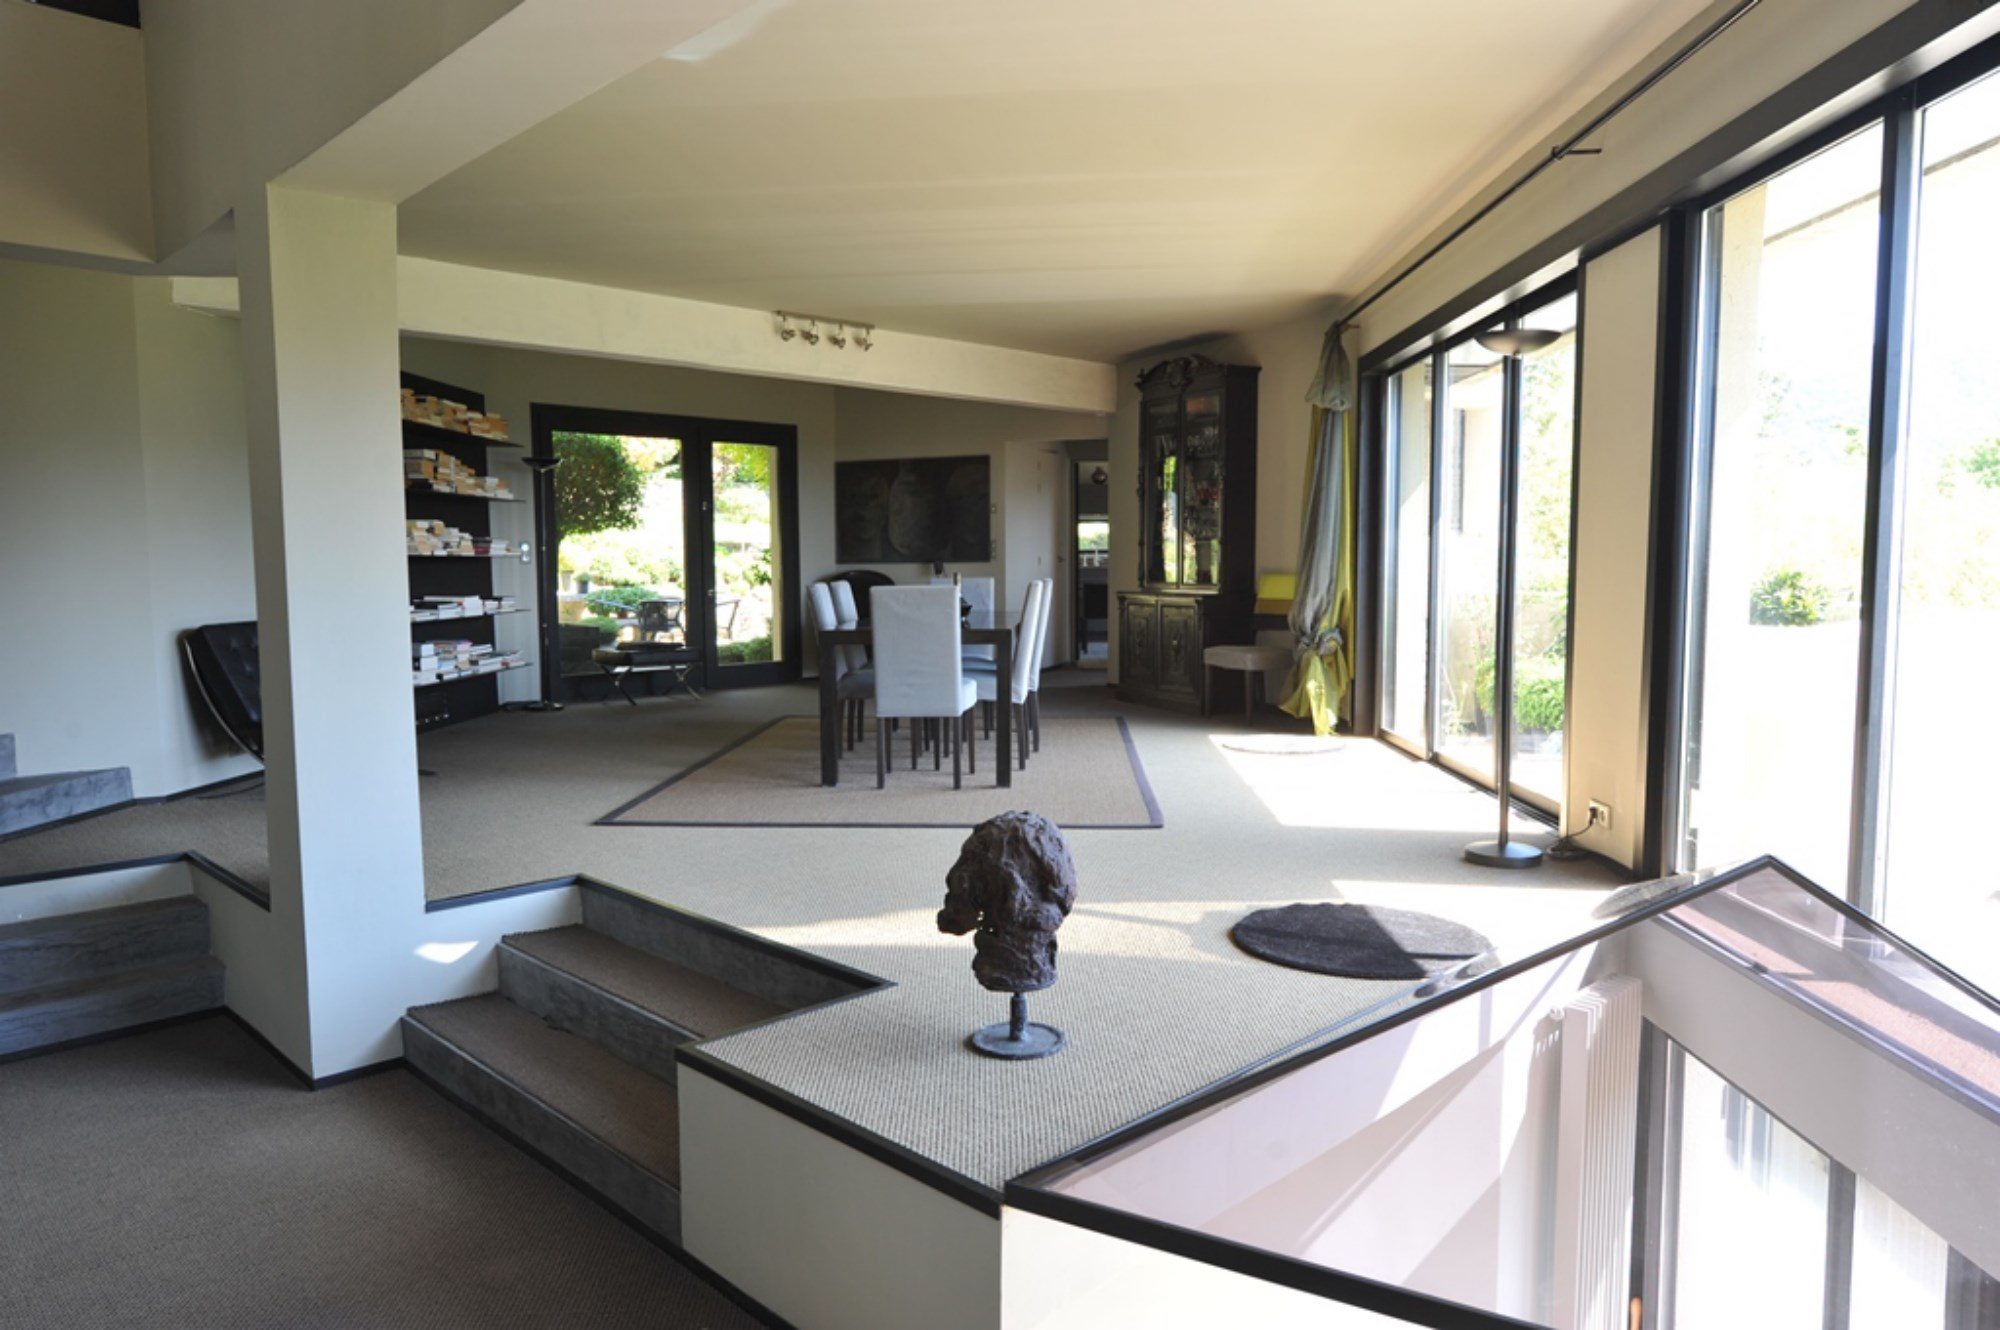 ventes en vente, en luberon, maison contemporaine avec terrasses ... - Photo De Maison Contemporaine